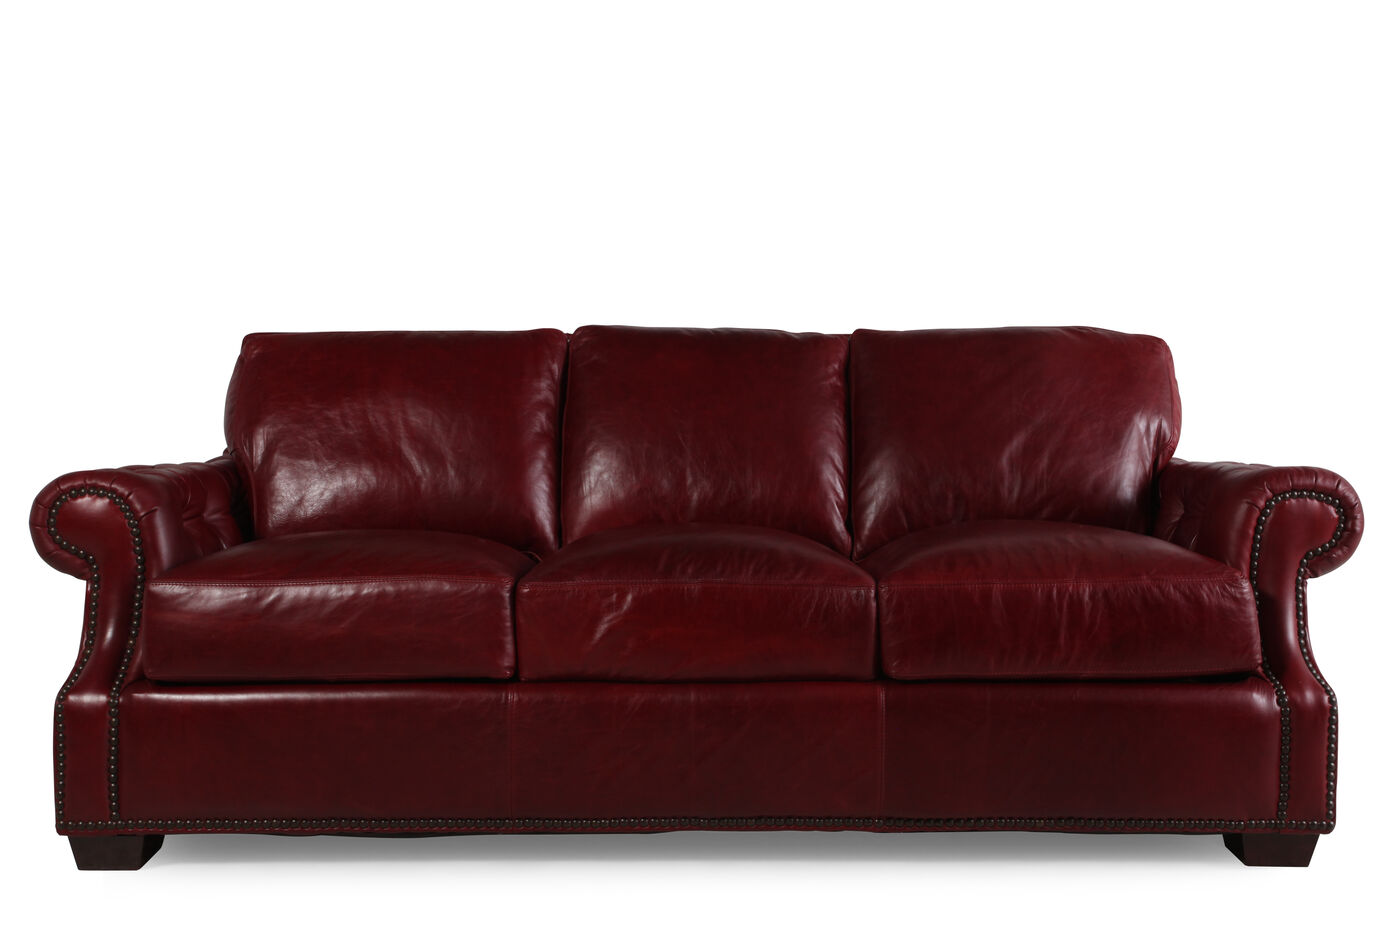 Traditional leather 93 sofa in marsala red mathis for Traditional leather sofas furniture